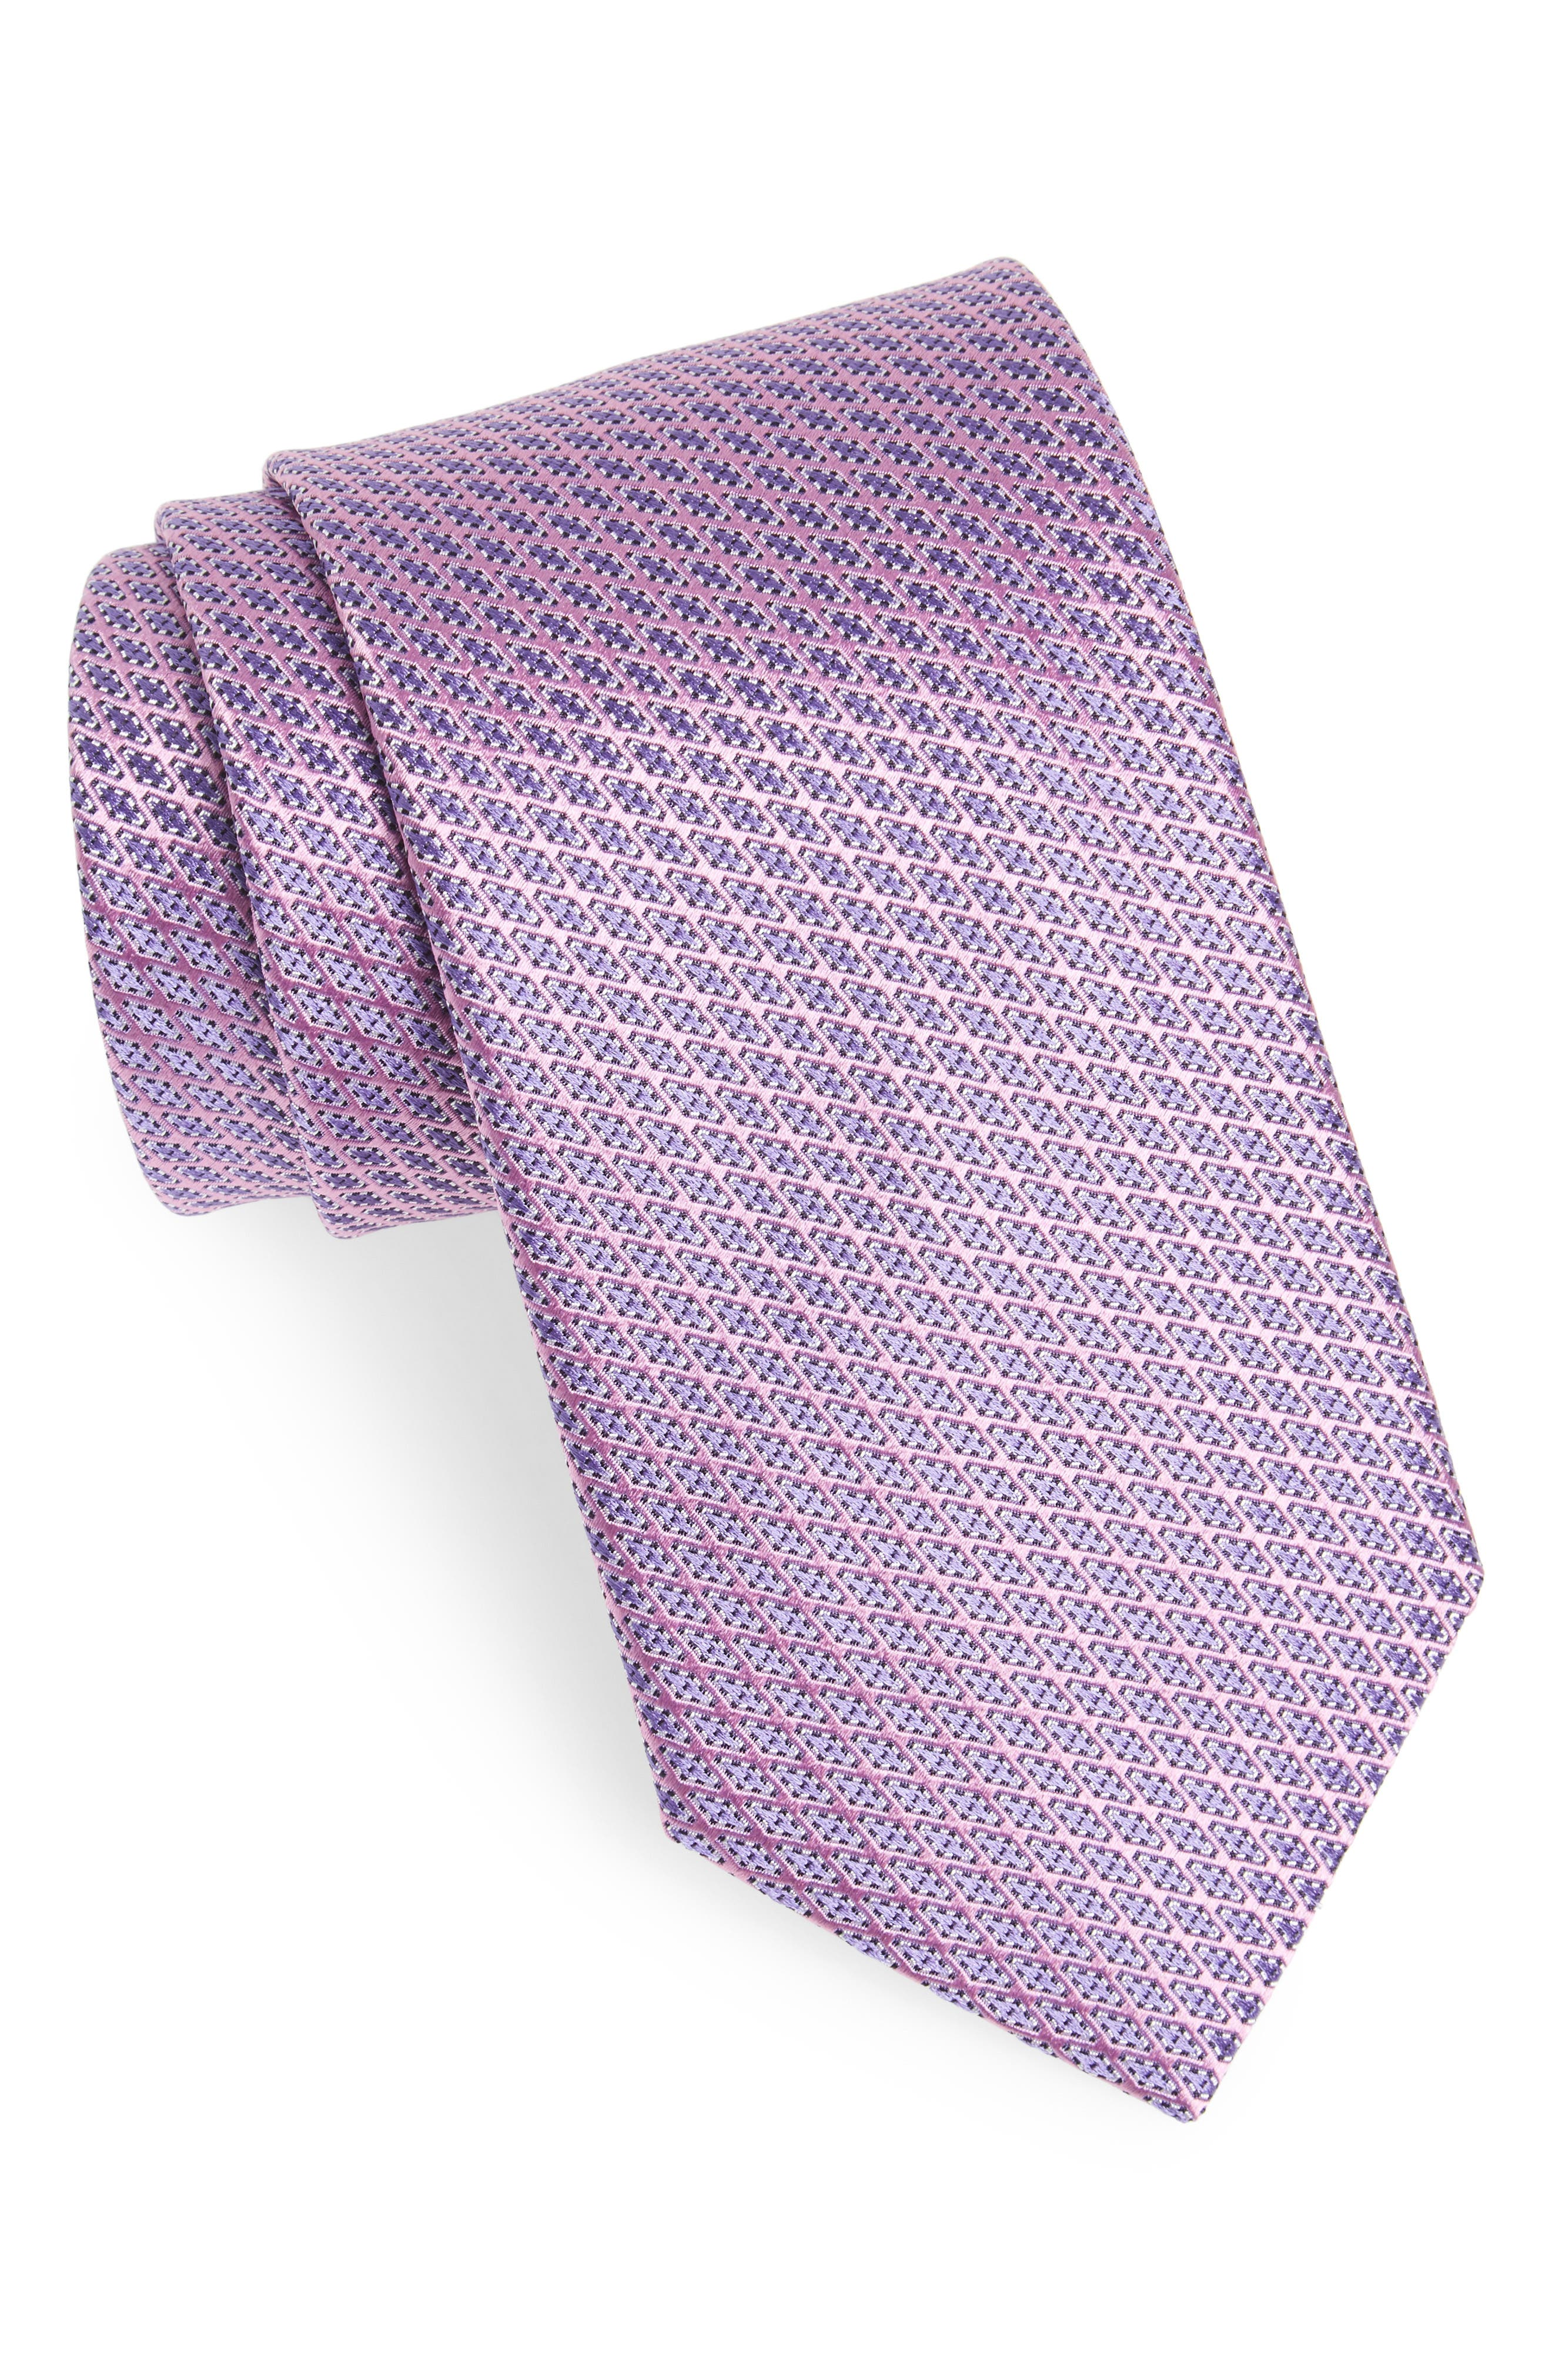 Neat Silk Tie,                             Main thumbnail 1, color,                             Pink